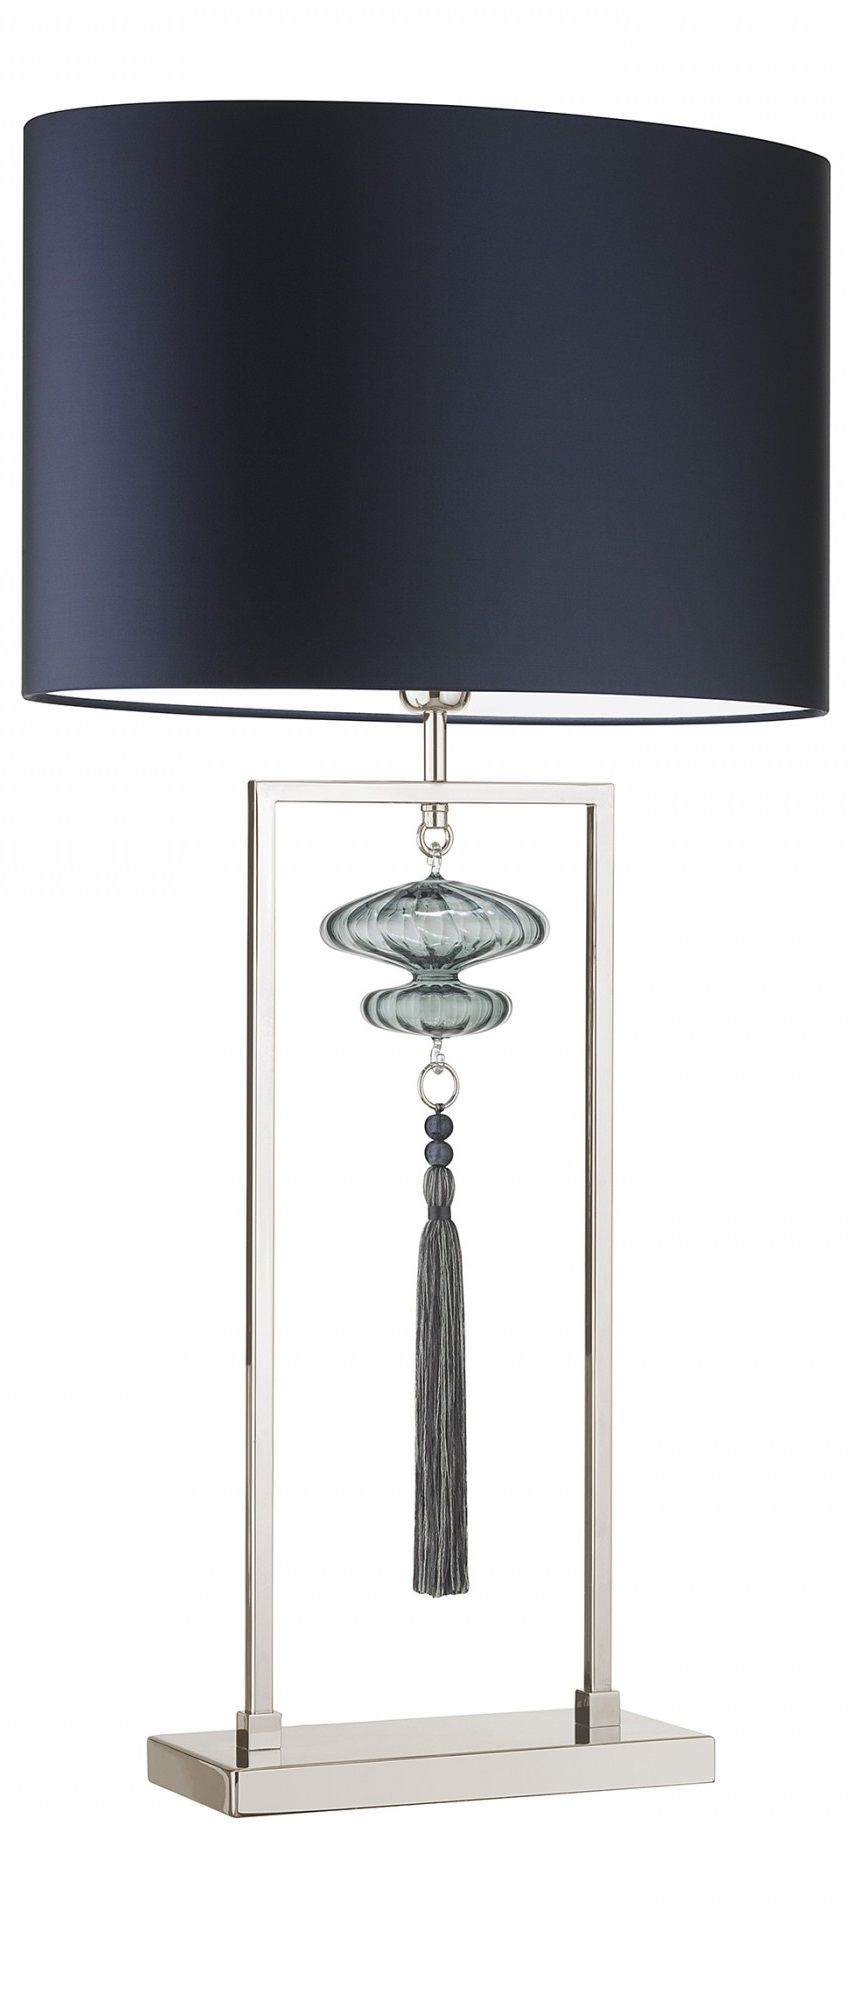 Blue Blue Table Lamp Table Lamps Modern Table Lamps Contemporary Table Lamps Designer Table Lamps Luxury Table Lamps Table Lamp Ideas Table Lamp Design